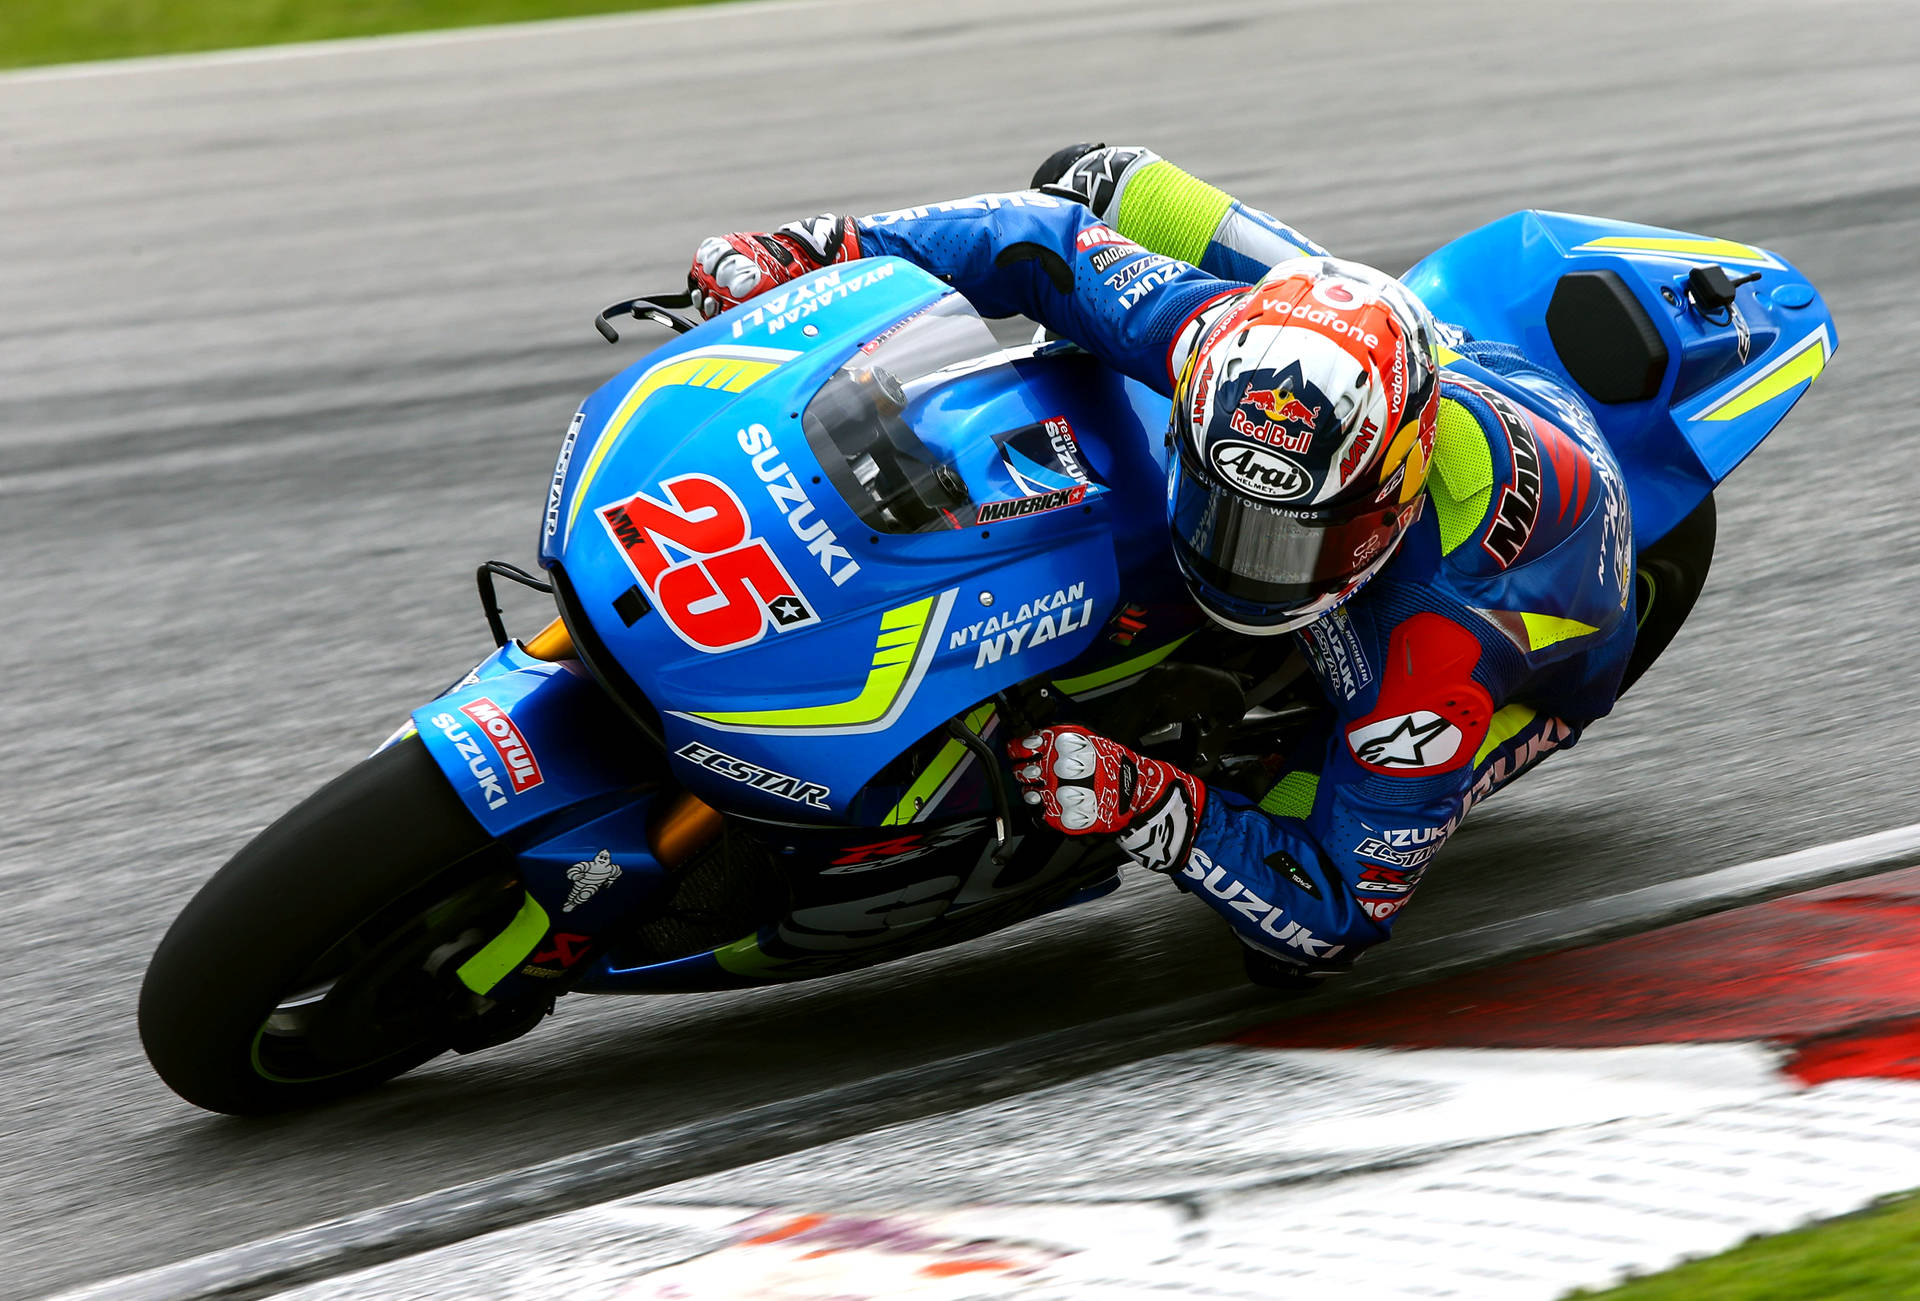 Still Receiving Concessions in 2016, Suzuki MotoGP Effort Poised to be More Competitive ...